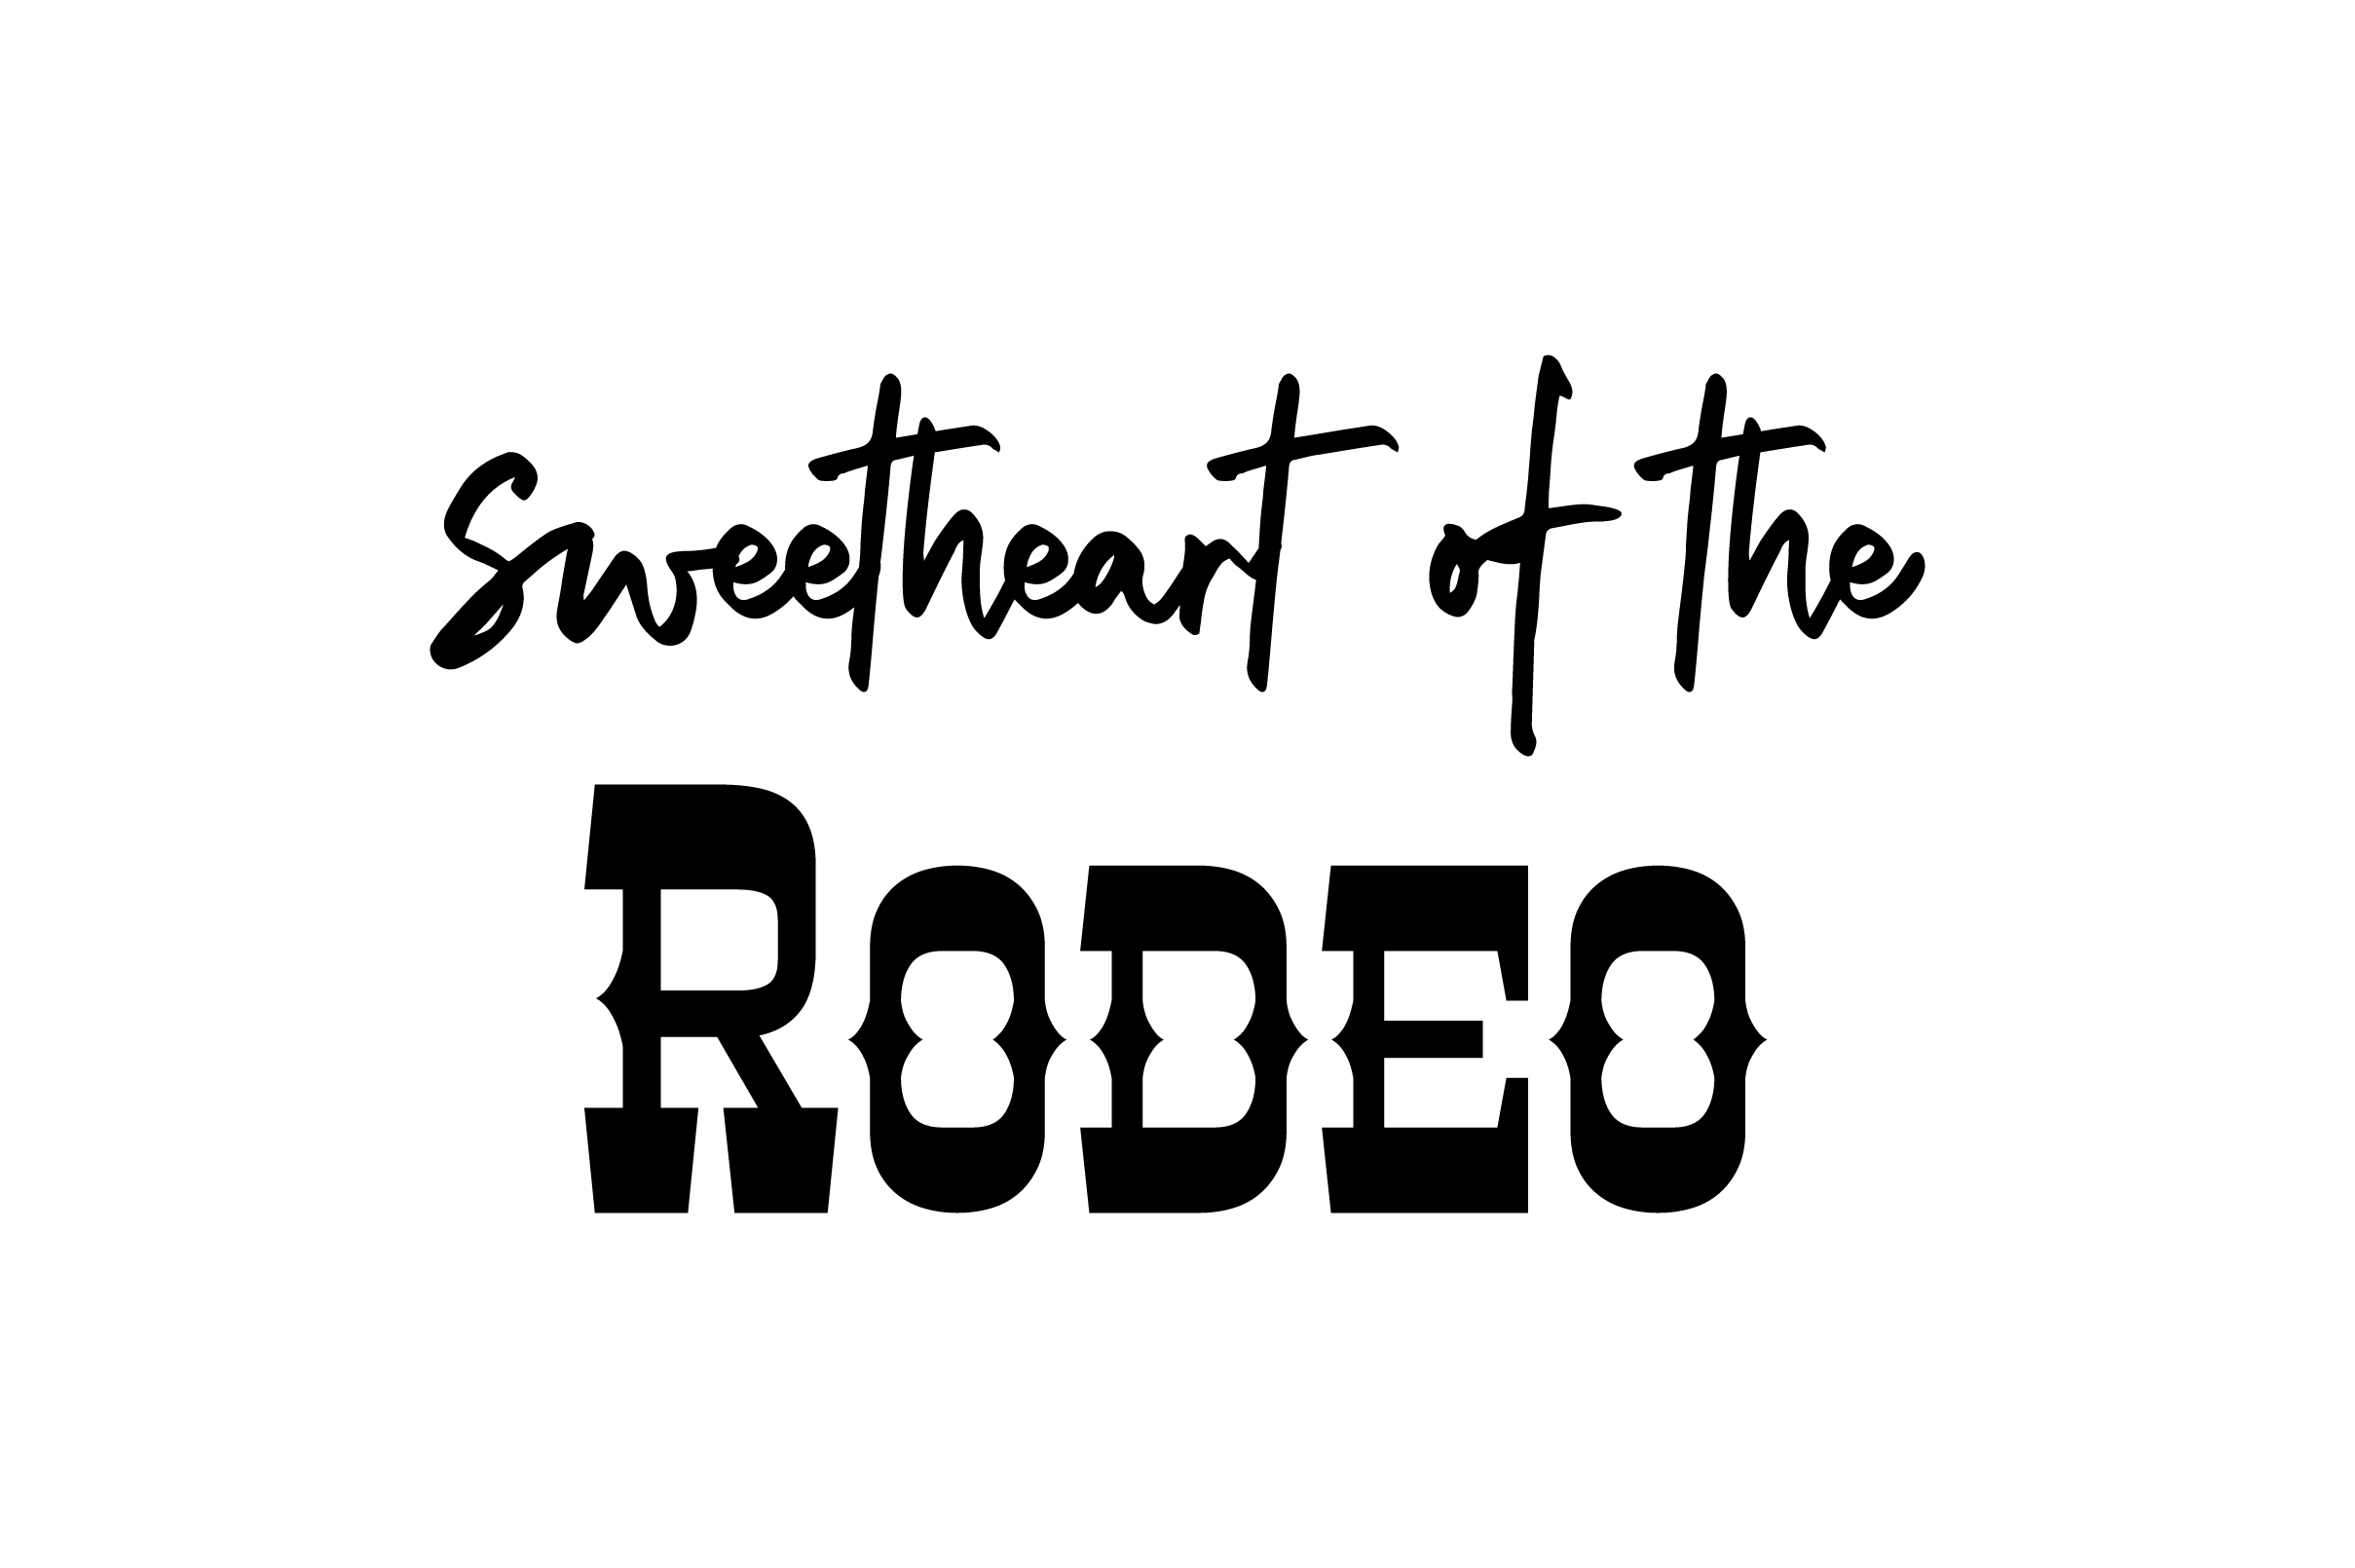 Download Free Sweetheart Of The Rodeo Svg Cut File By Creative Fabrica Crafts for Cricut Explore, Silhouette and other cutting machines.